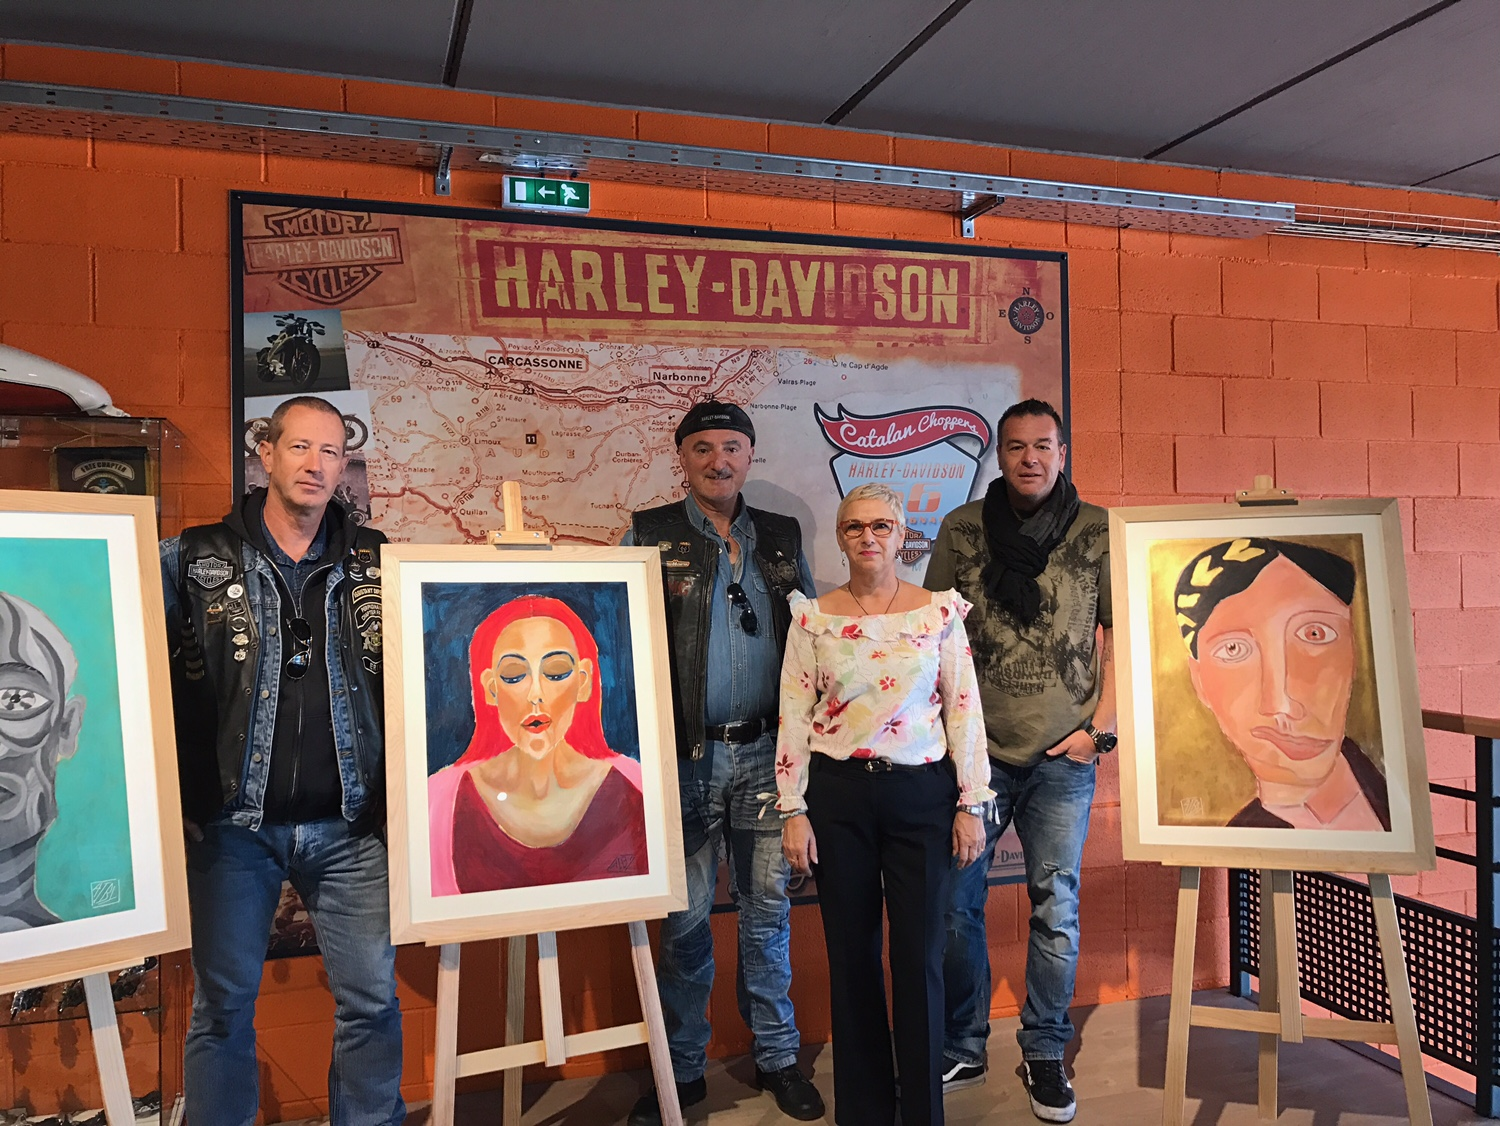 perpignan exposition l artiste aiby s installe la concession harley davidson. Black Bedroom Furniture Sets. Home Design Ideas